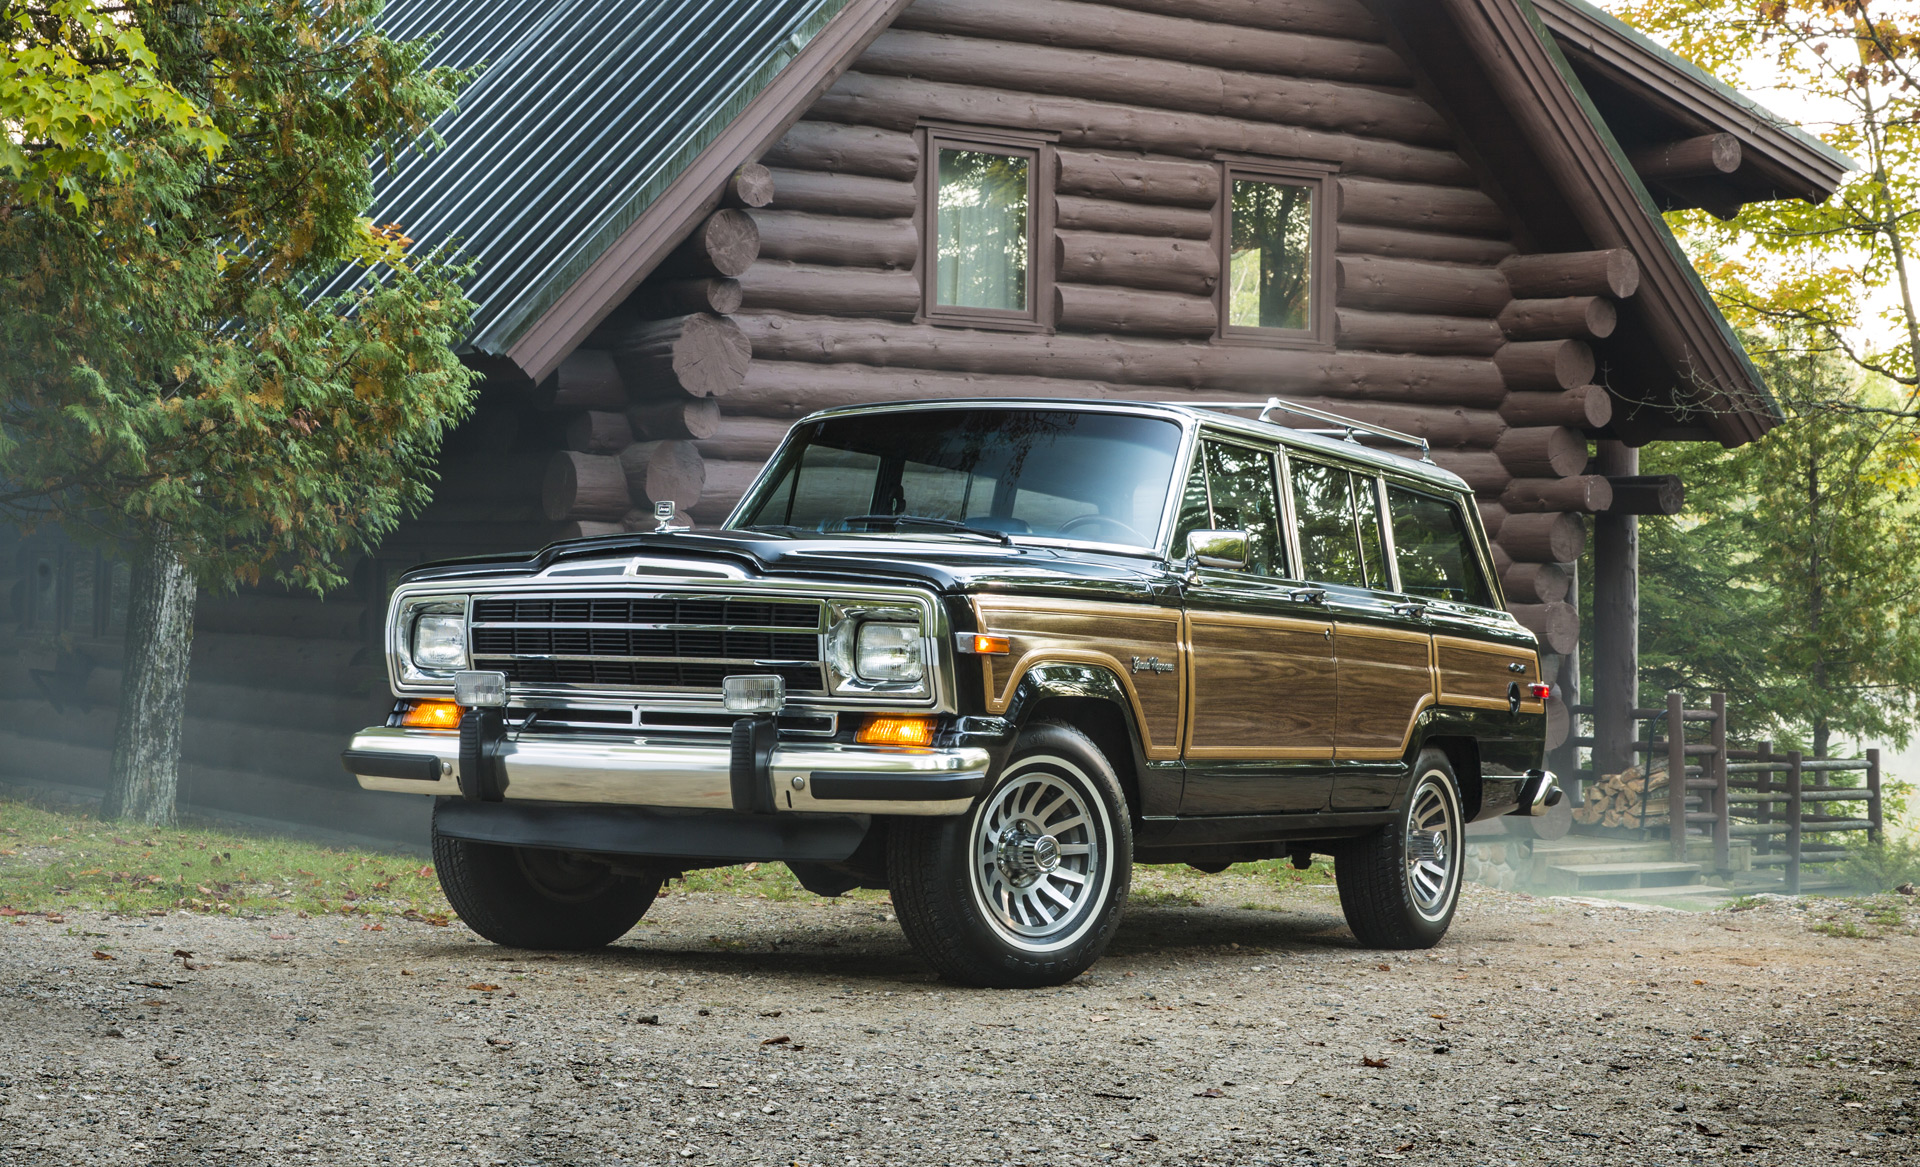 Grand Wagoneer 2018 >> Jeep's range-topping Grand Wagoneer could nudge $140k, says CEO